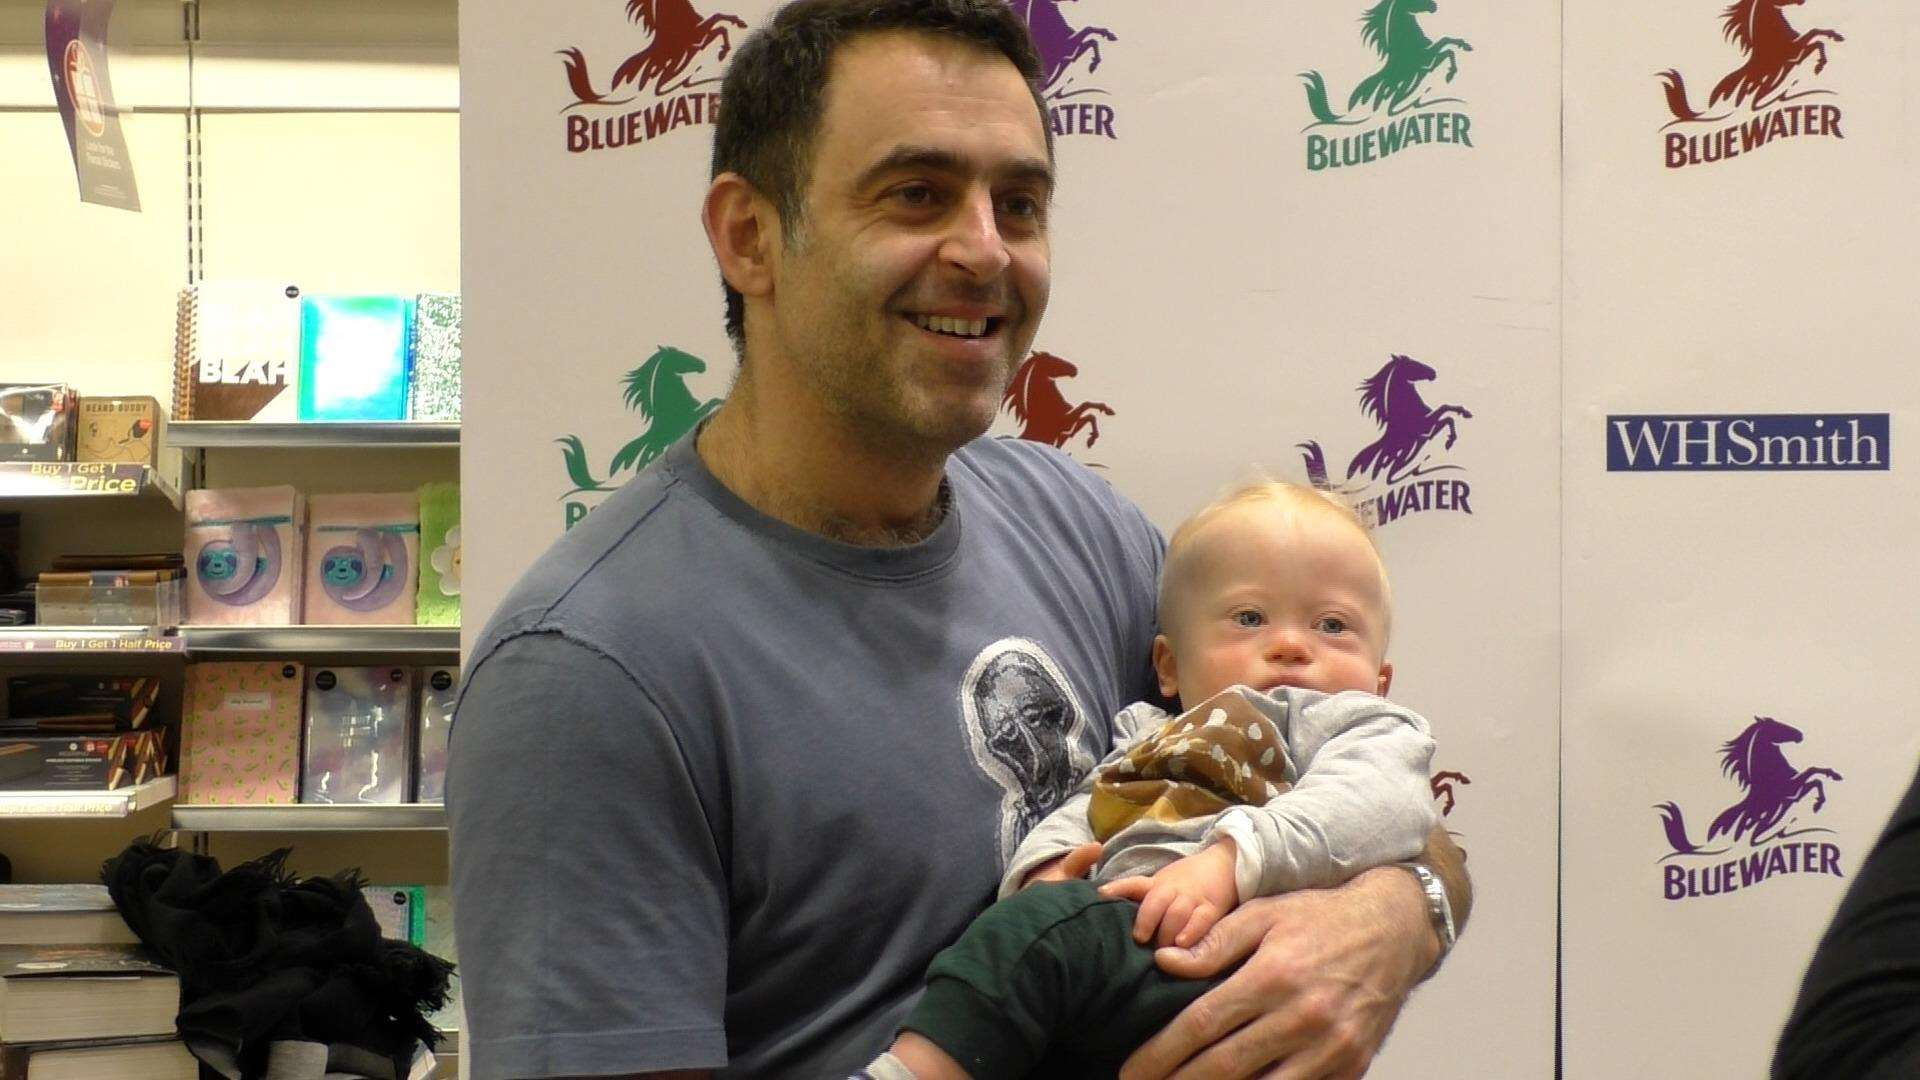 Ronnie O'Sullivan also met a young fan at the book signing